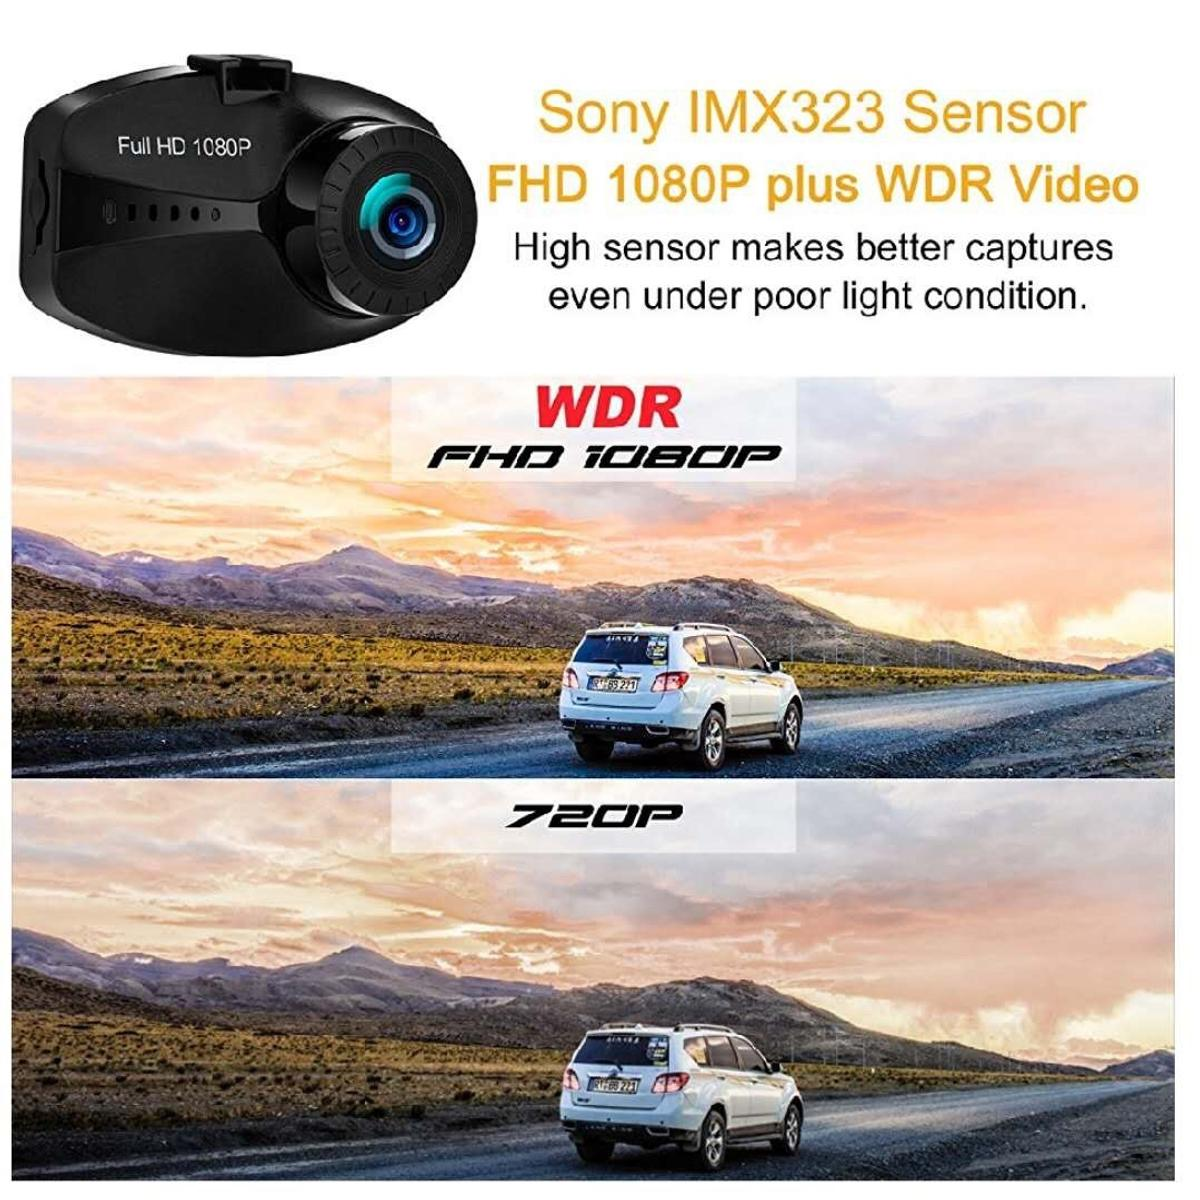 Car Dash Cam FHD 1080P New in SS4 Rochford for £25 00 for